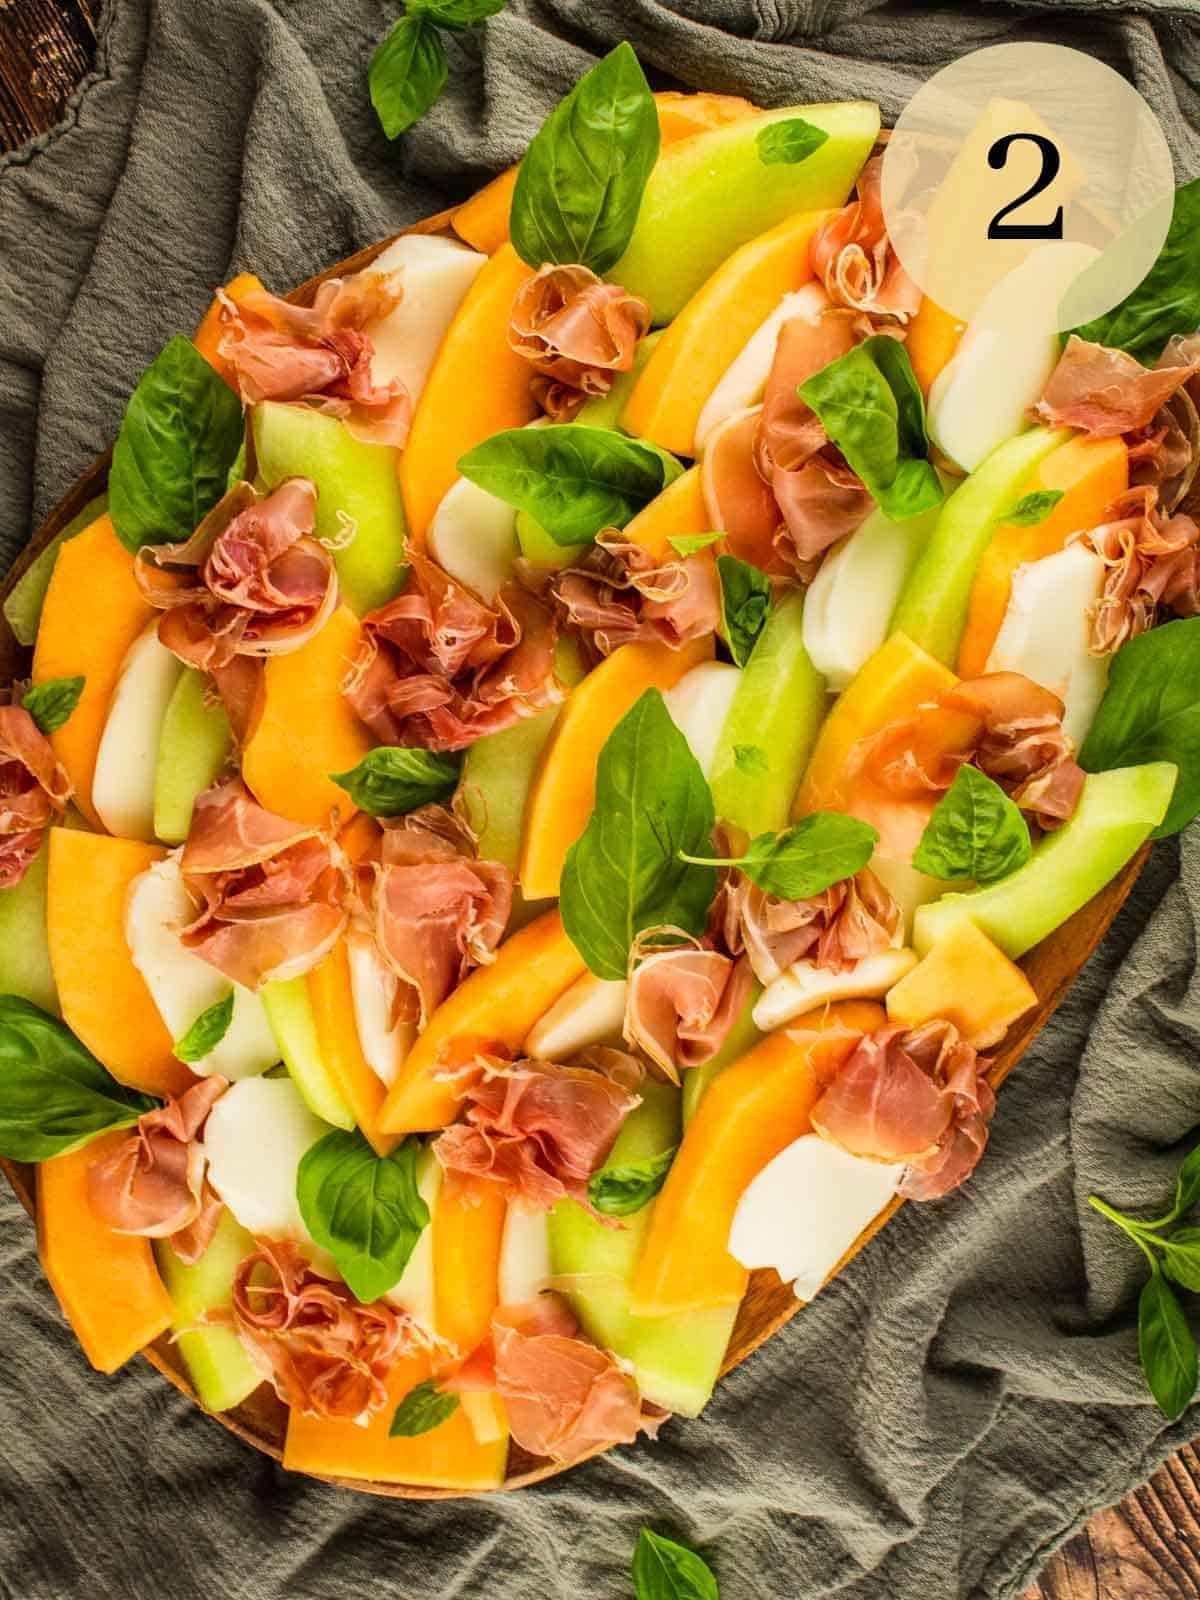 honeydew, cantaloupe and mozzarella layered on a tray with prosciutto and fresh basil leaves